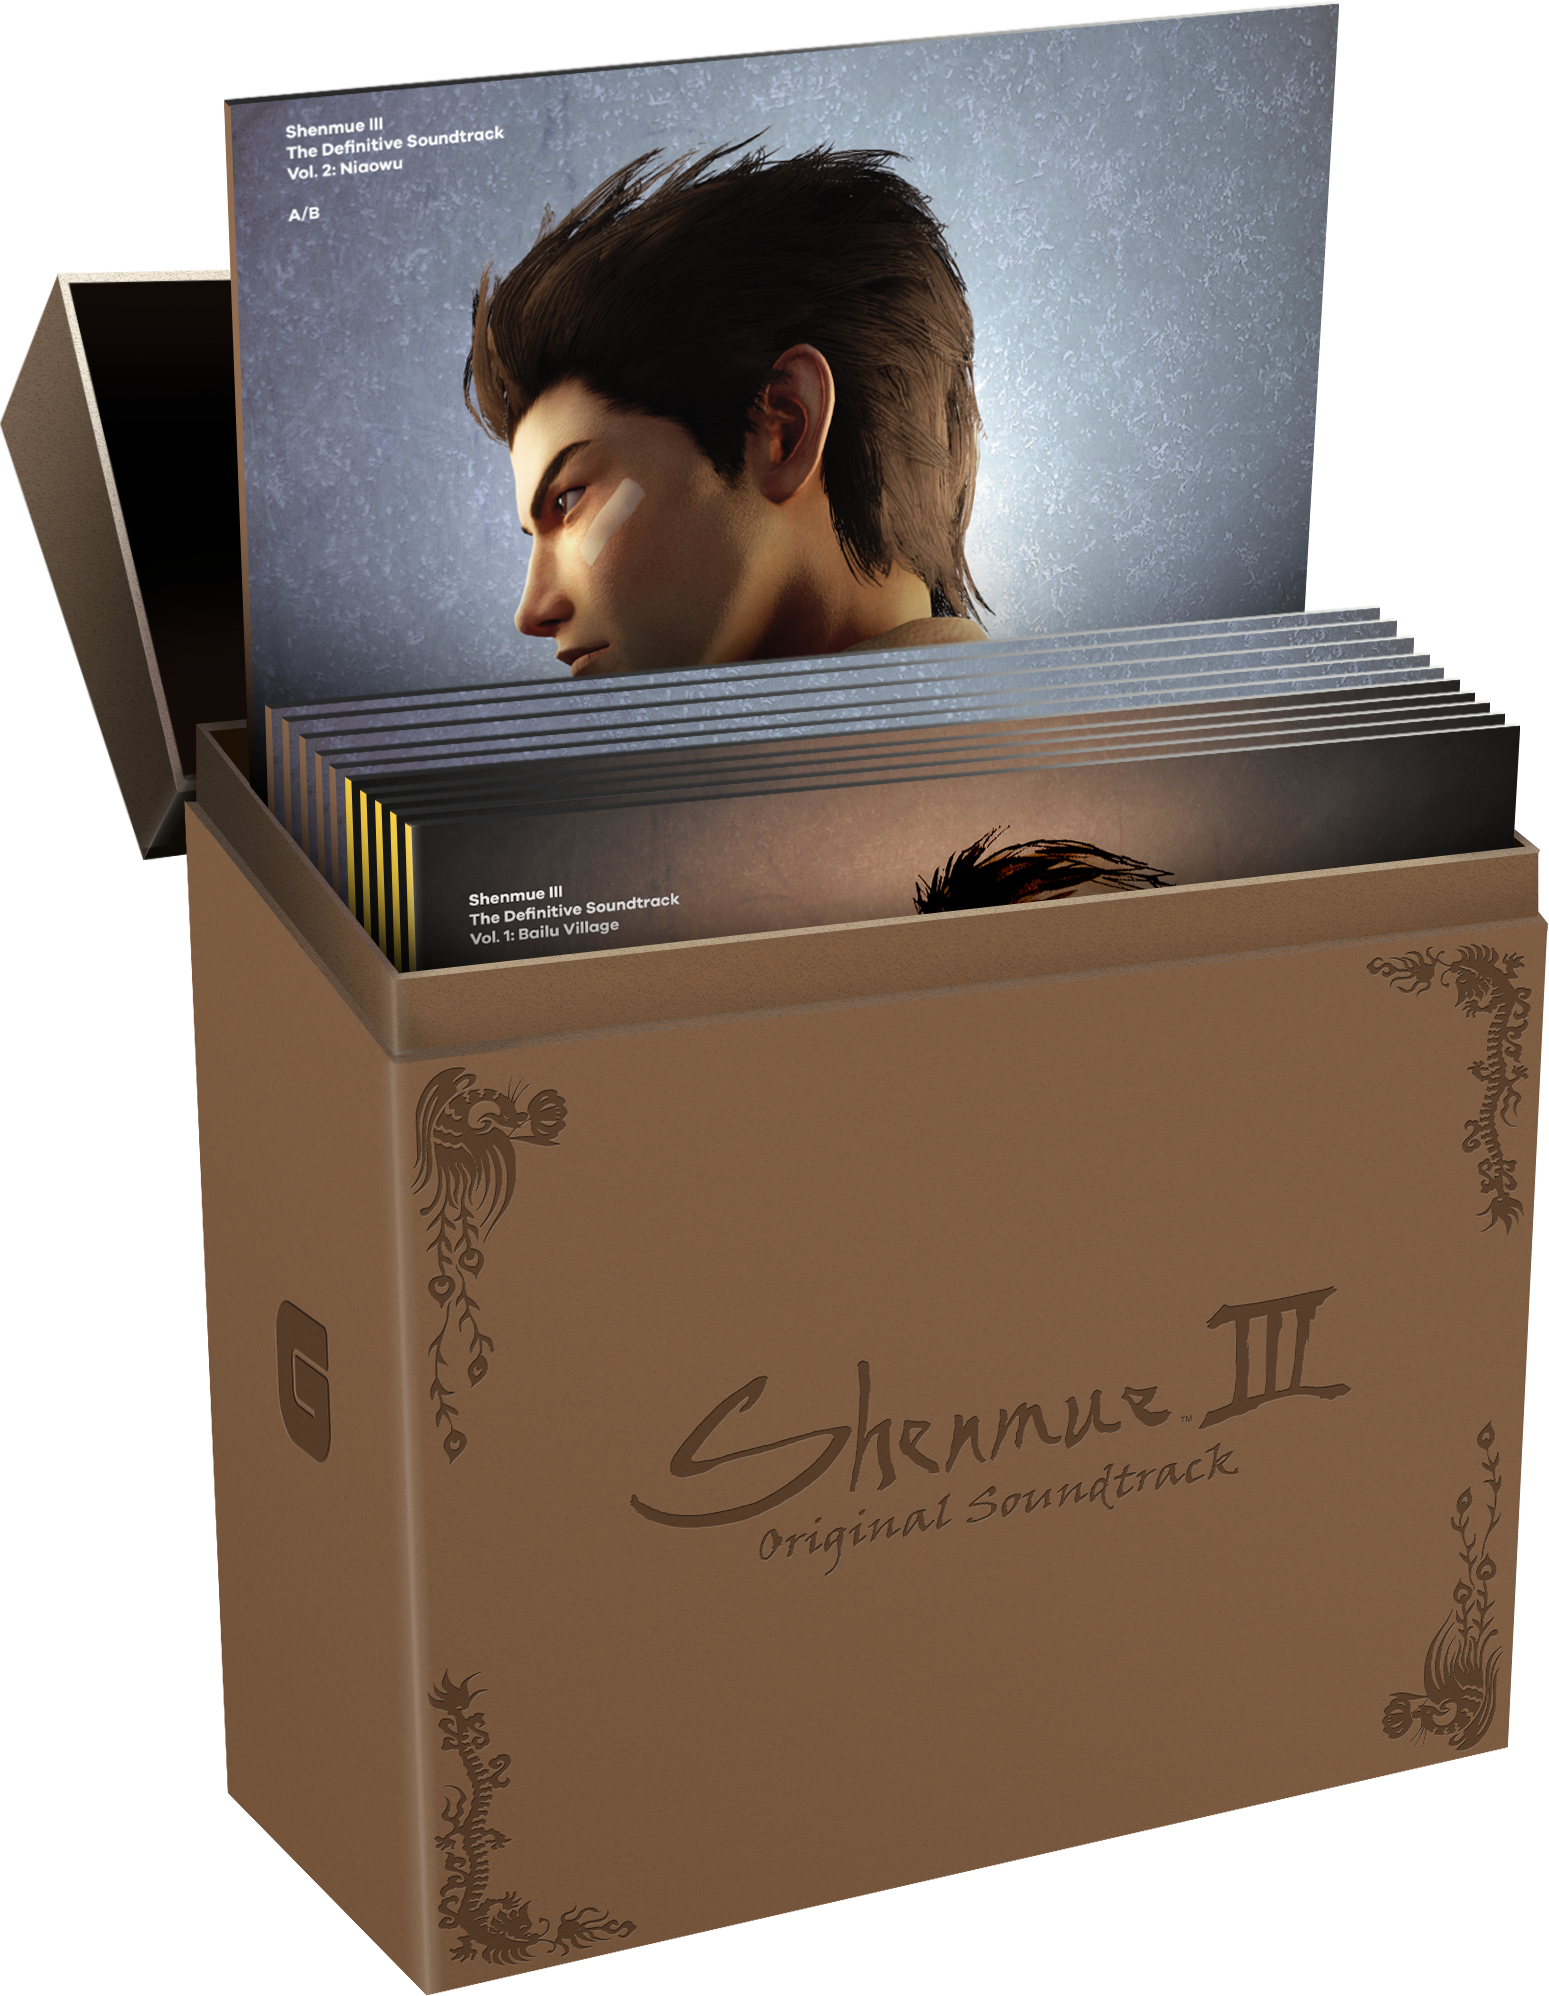 Shenmue III The Definitive Soundtrack Complete Collection (GS-020-CC) Mockup. Artwork is not final and subject to change.